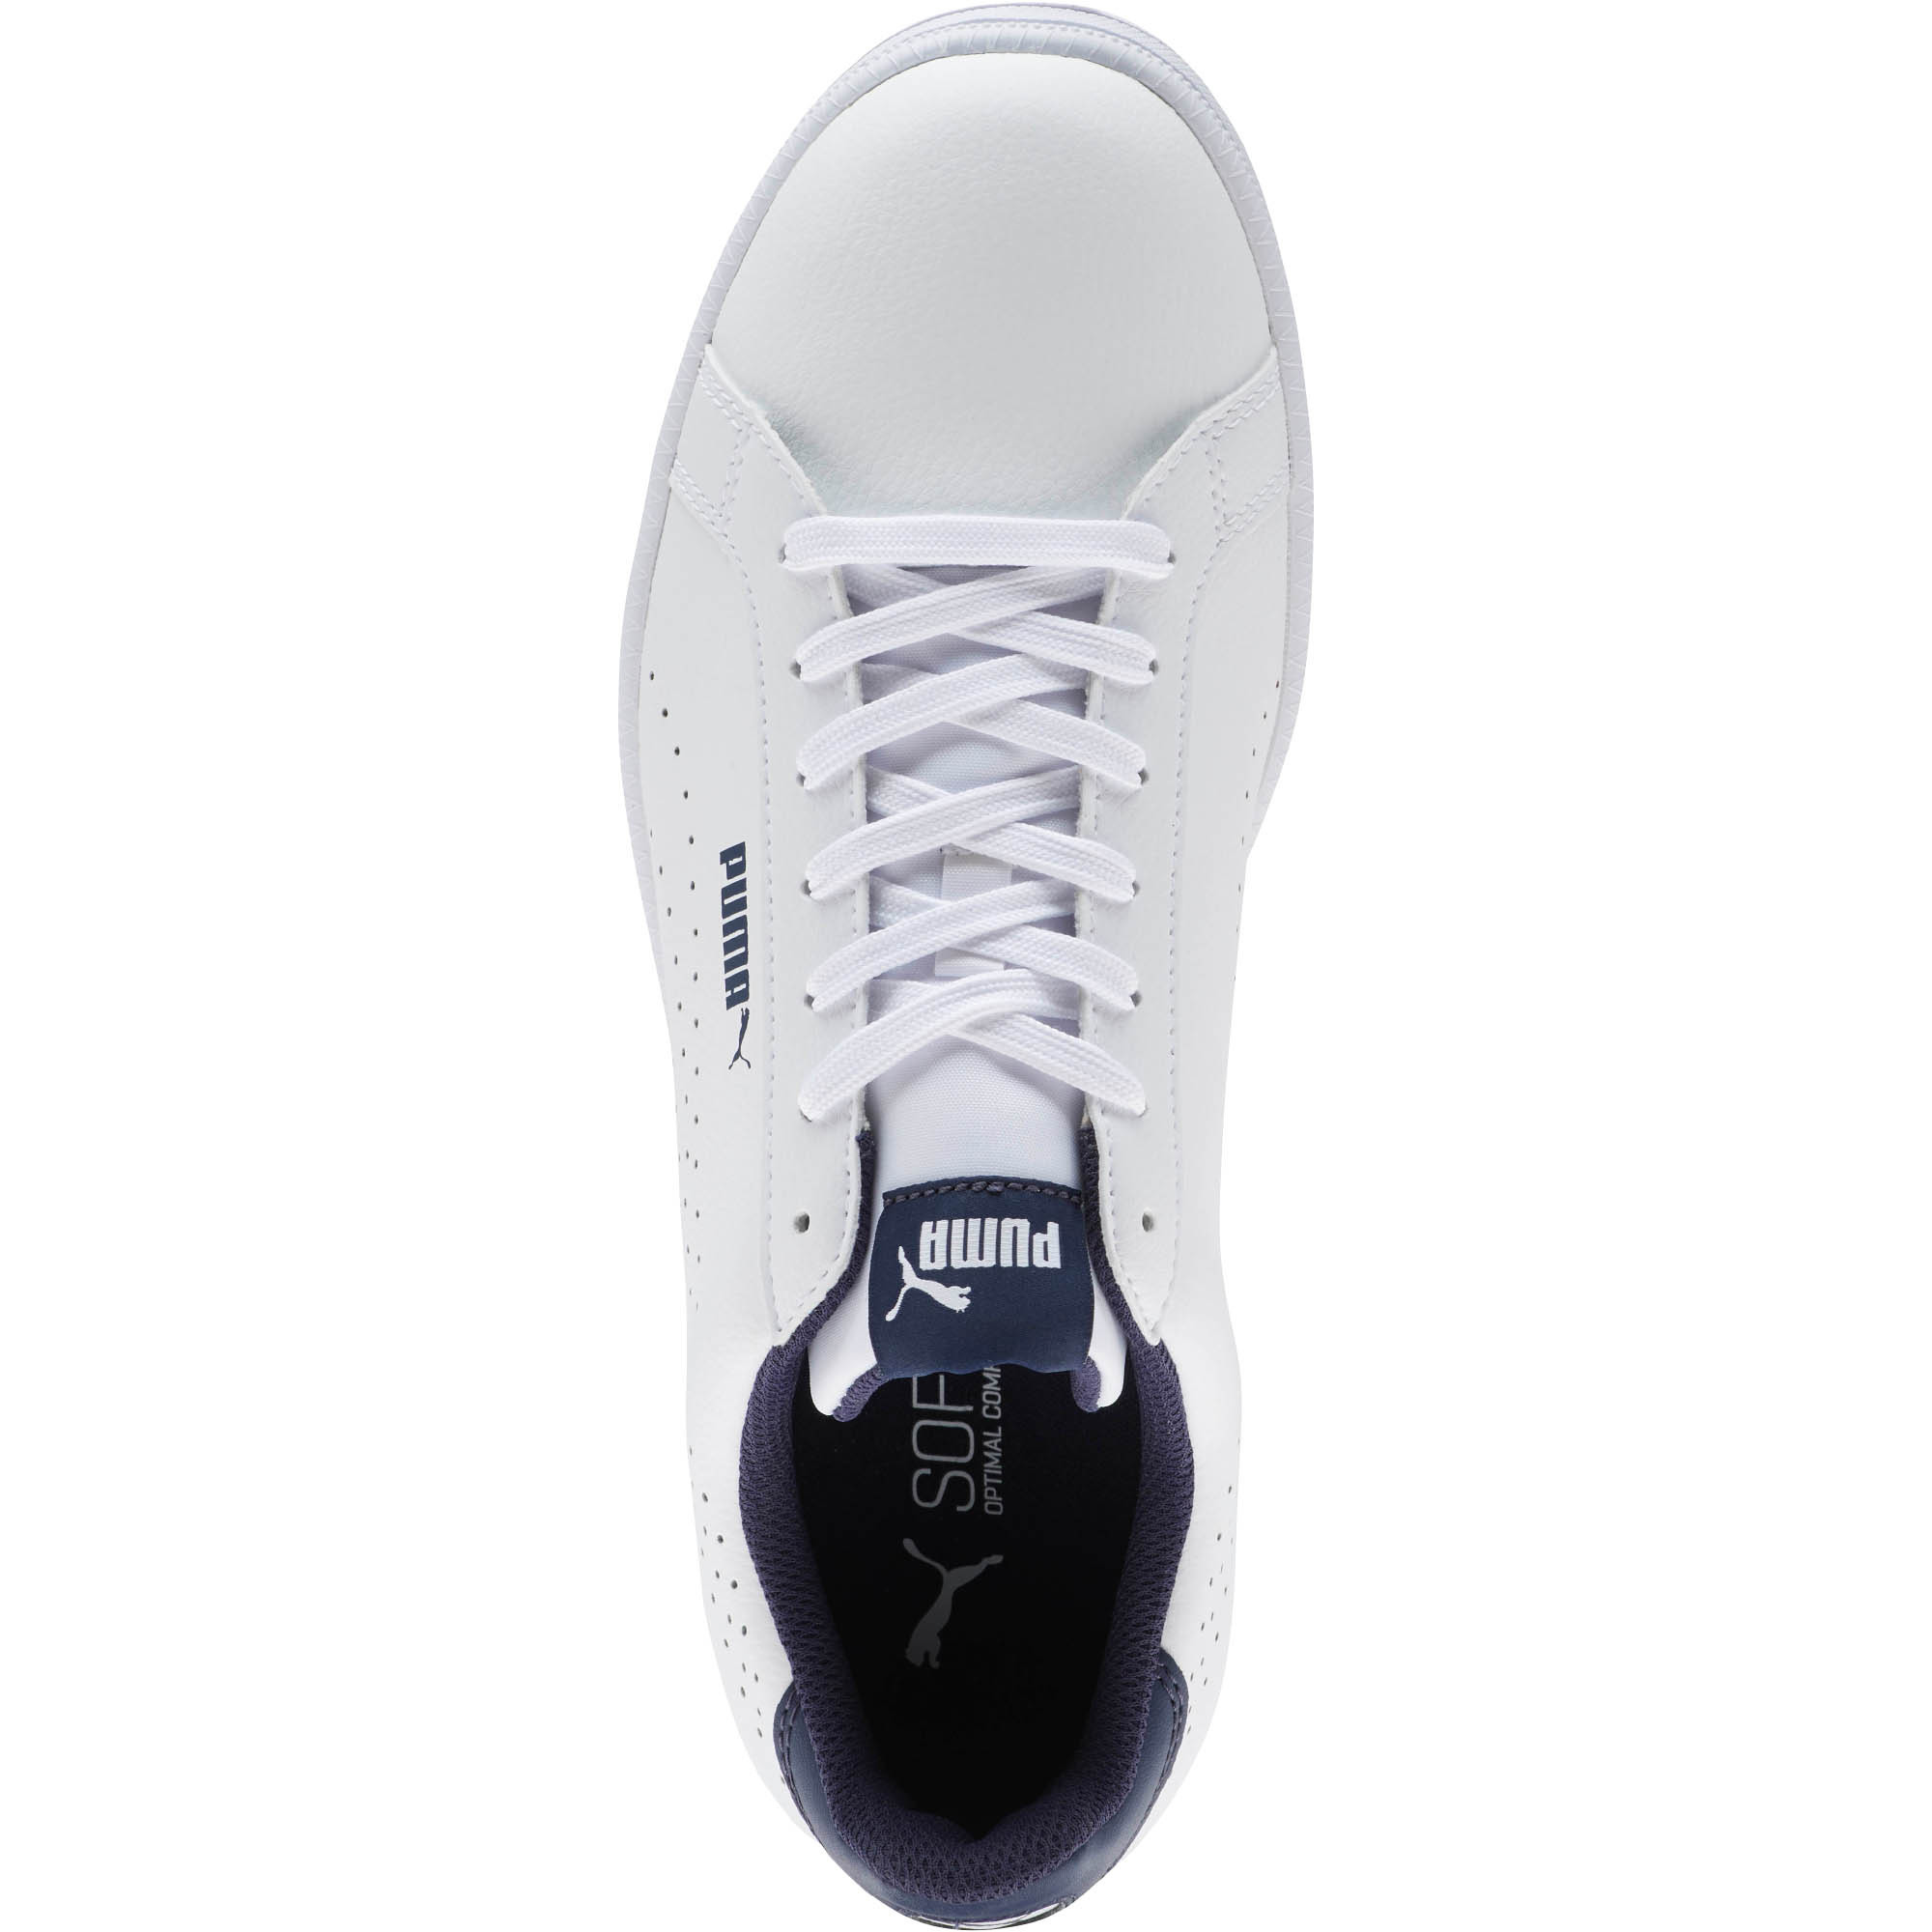 PUMA-PUMA-Smash-Perf-Men-039-s-Sneakers-Men-Shoe-Basics thumbnail 6